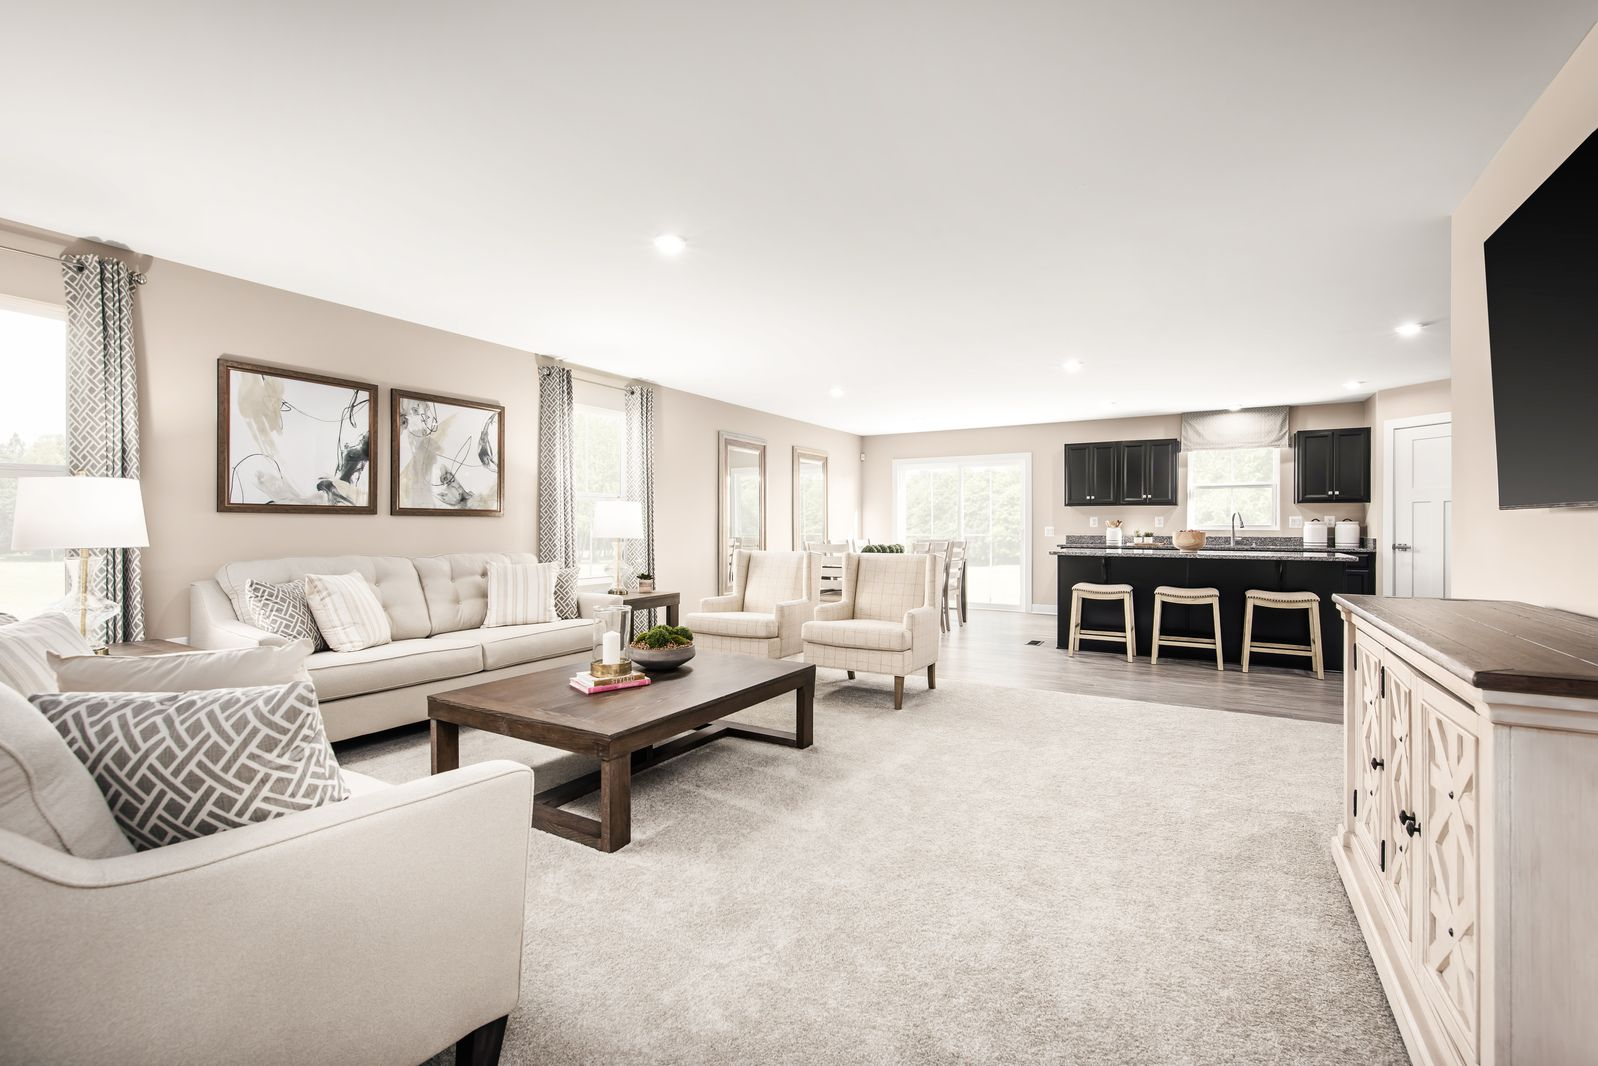 Living Area featured in the Eden Cay By Ryan Homes in Charlotte, NC